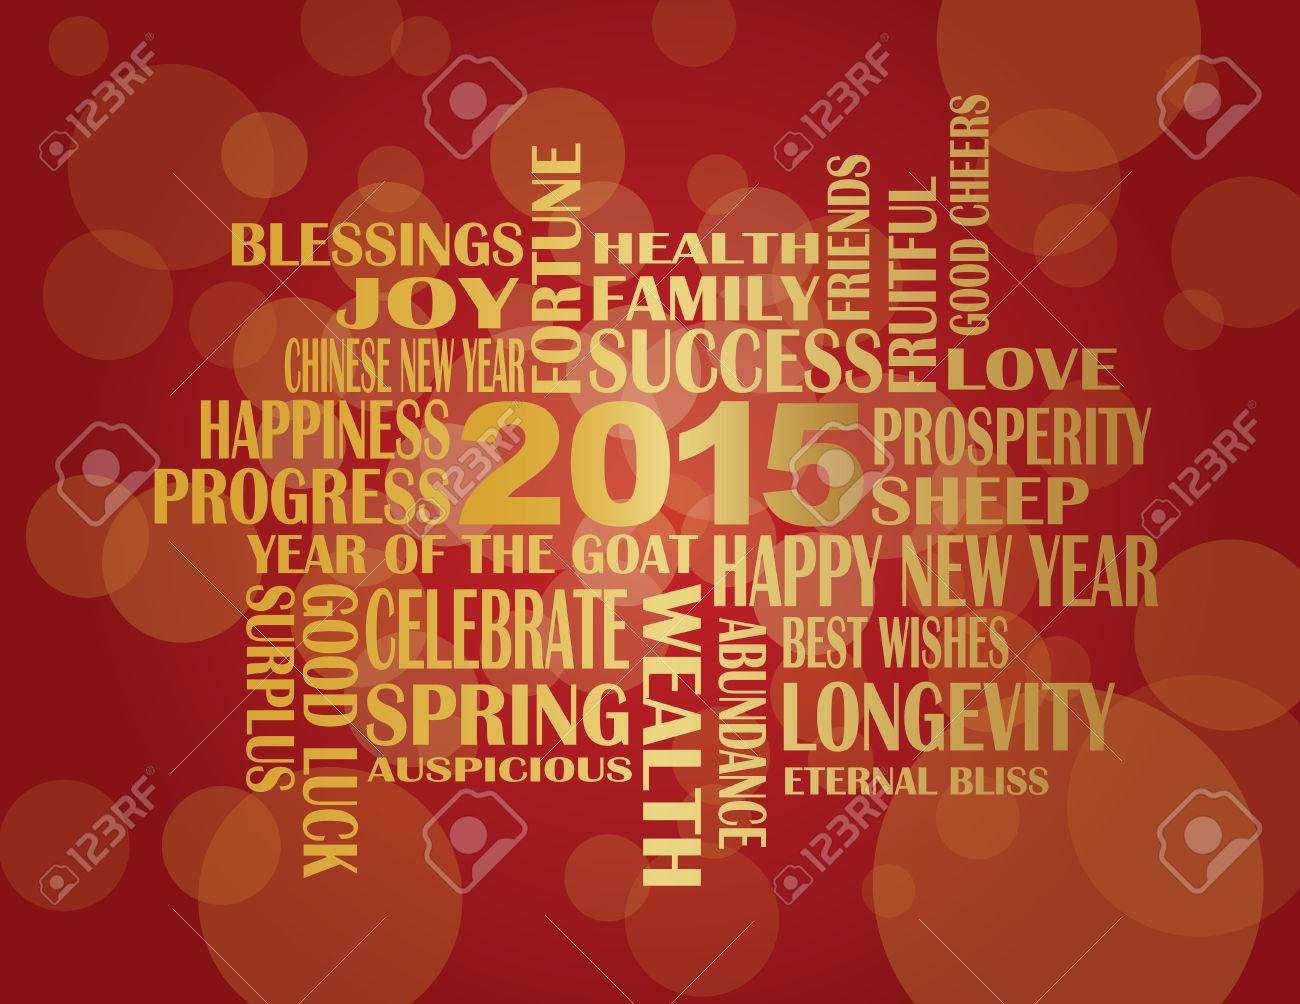 2015 Chinese Lunar New Year English Greetings Royalty Free Cliparts